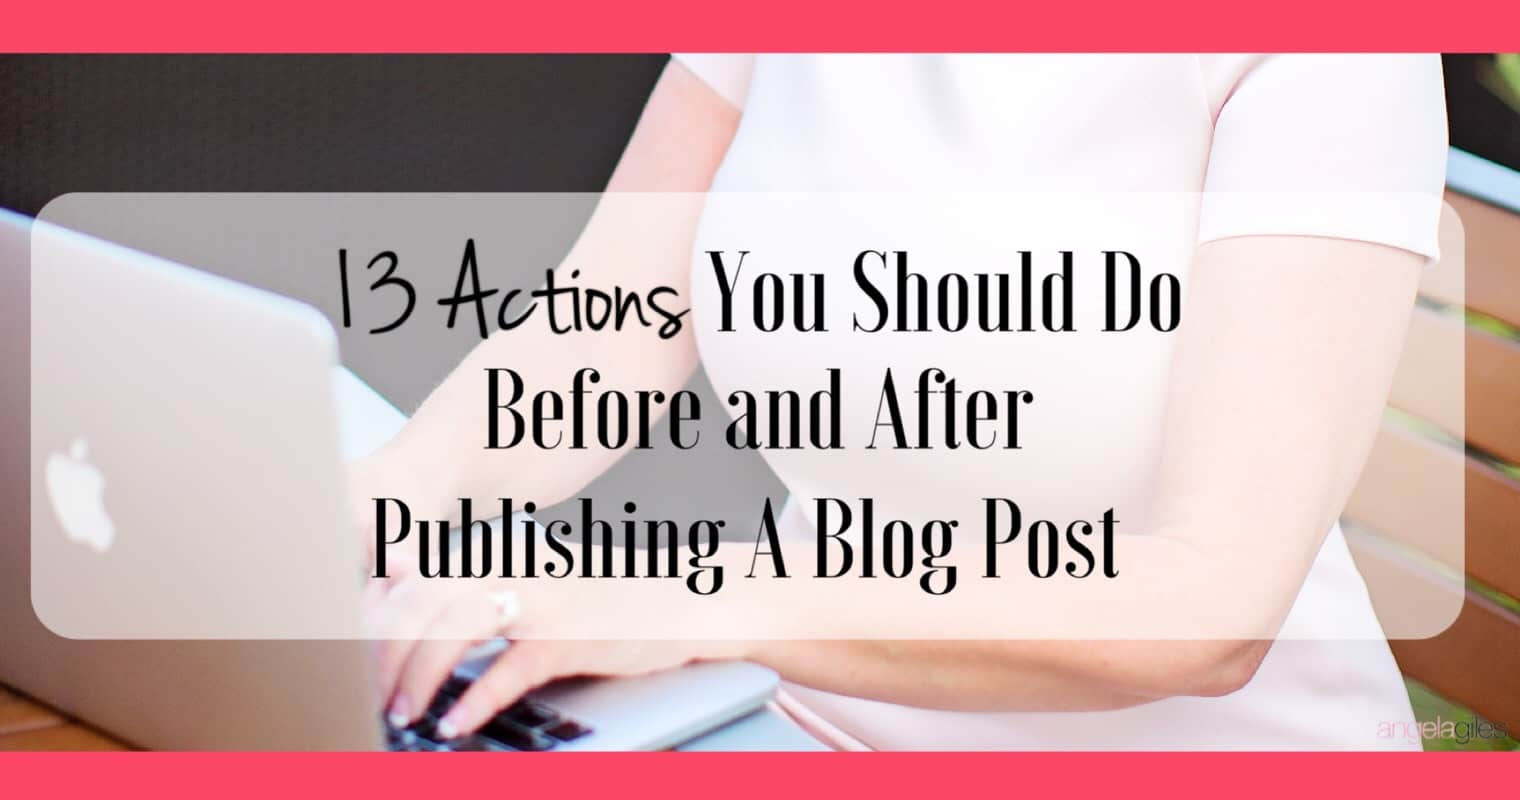 13 Actions You Should Do Before & After Publishing A Blog Post